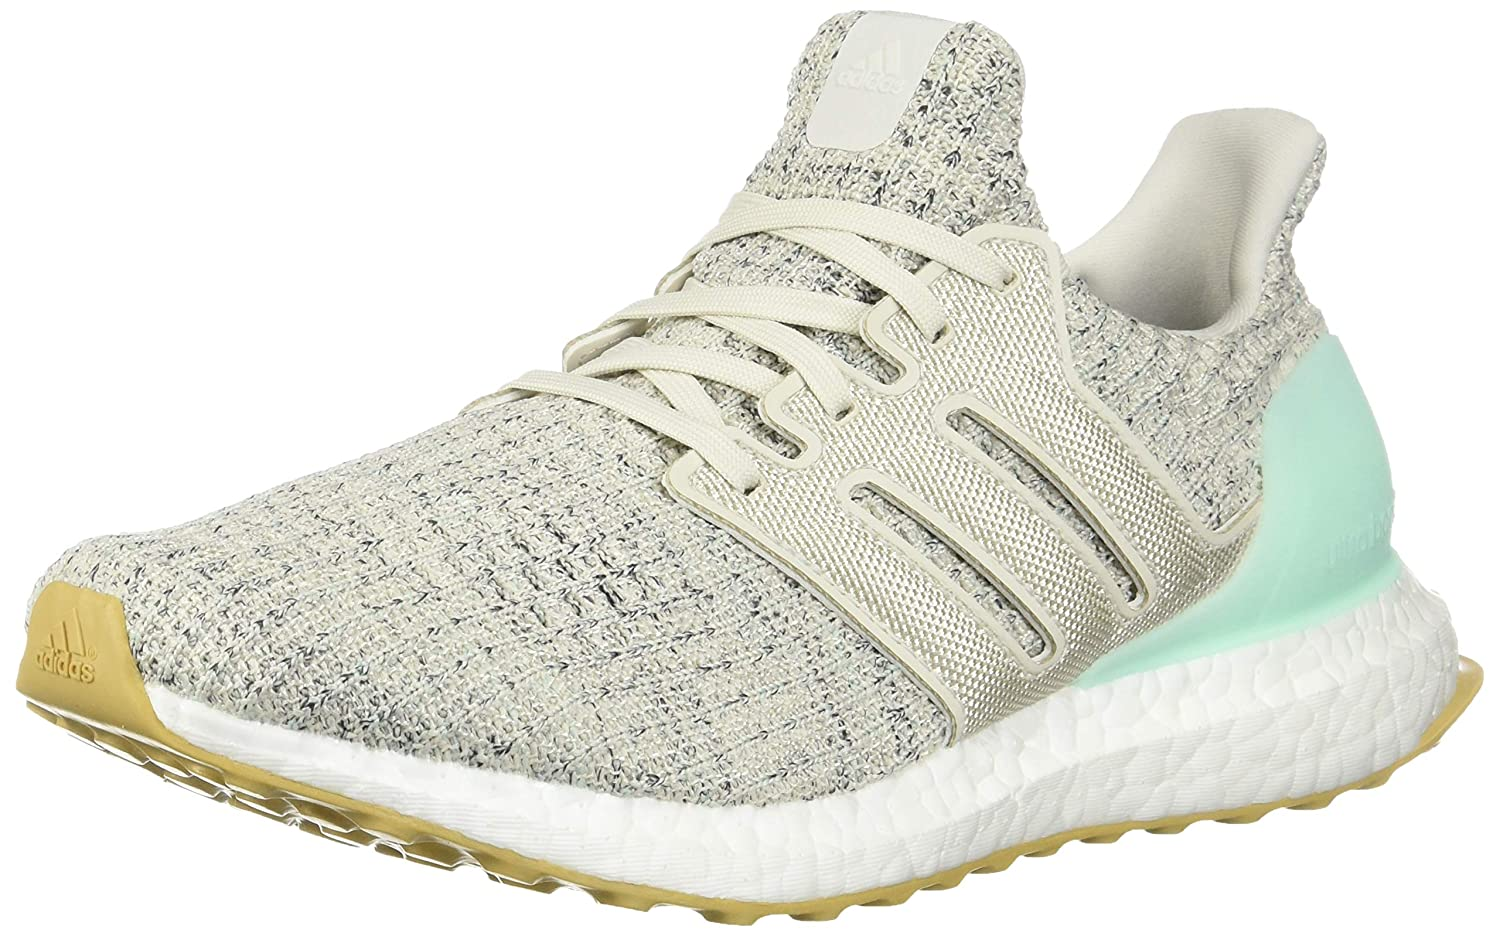 Clear Mint Raw White Carbon adidas Women's UltraBOOST Running shoes